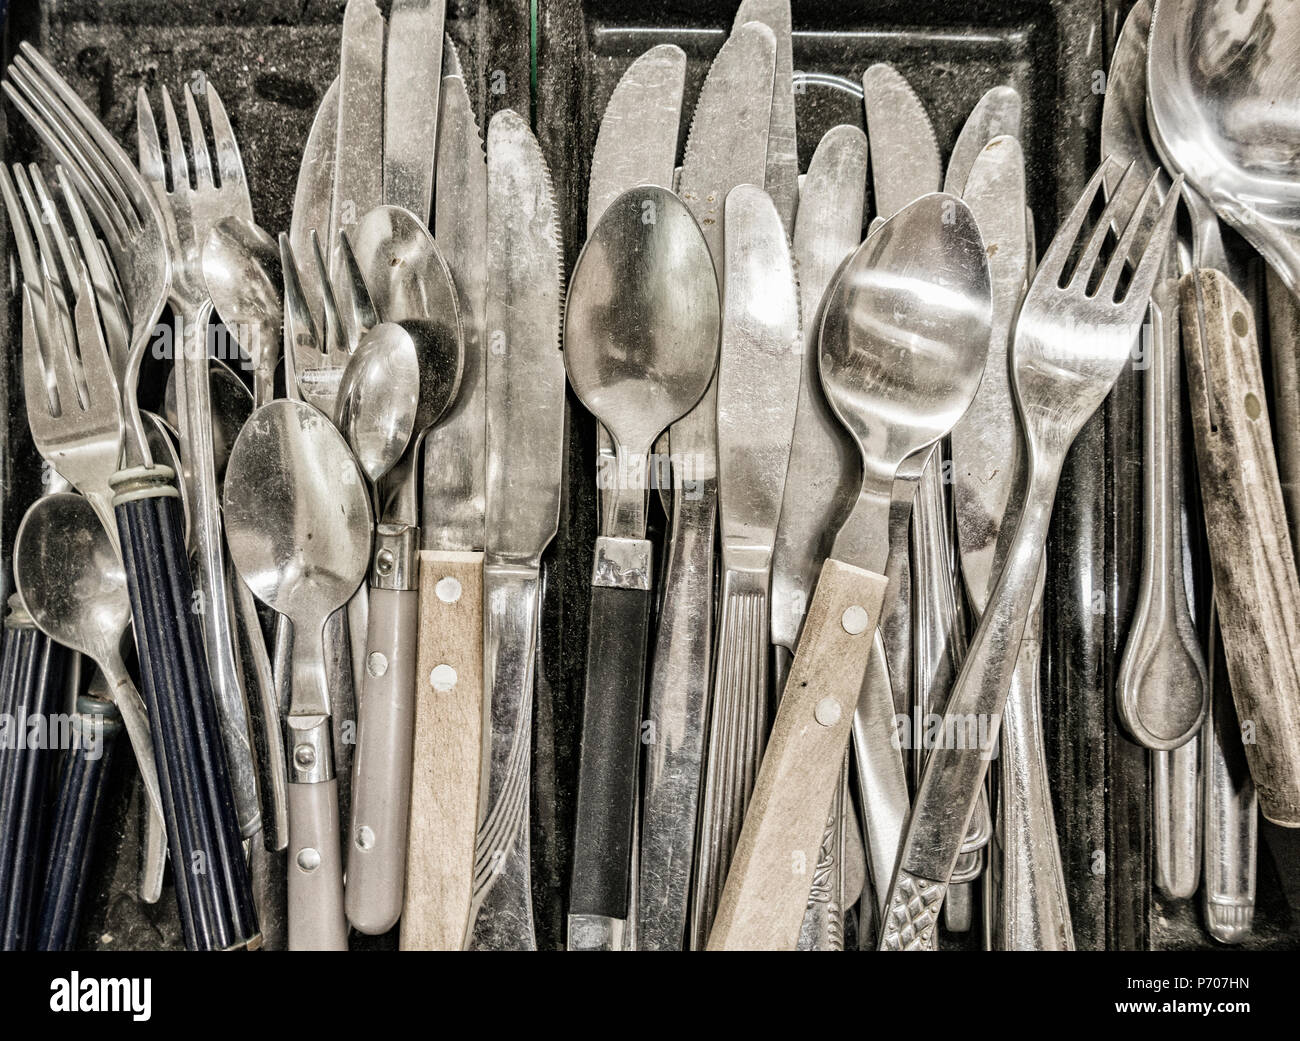 Old cutlery om market stall - Stock Image